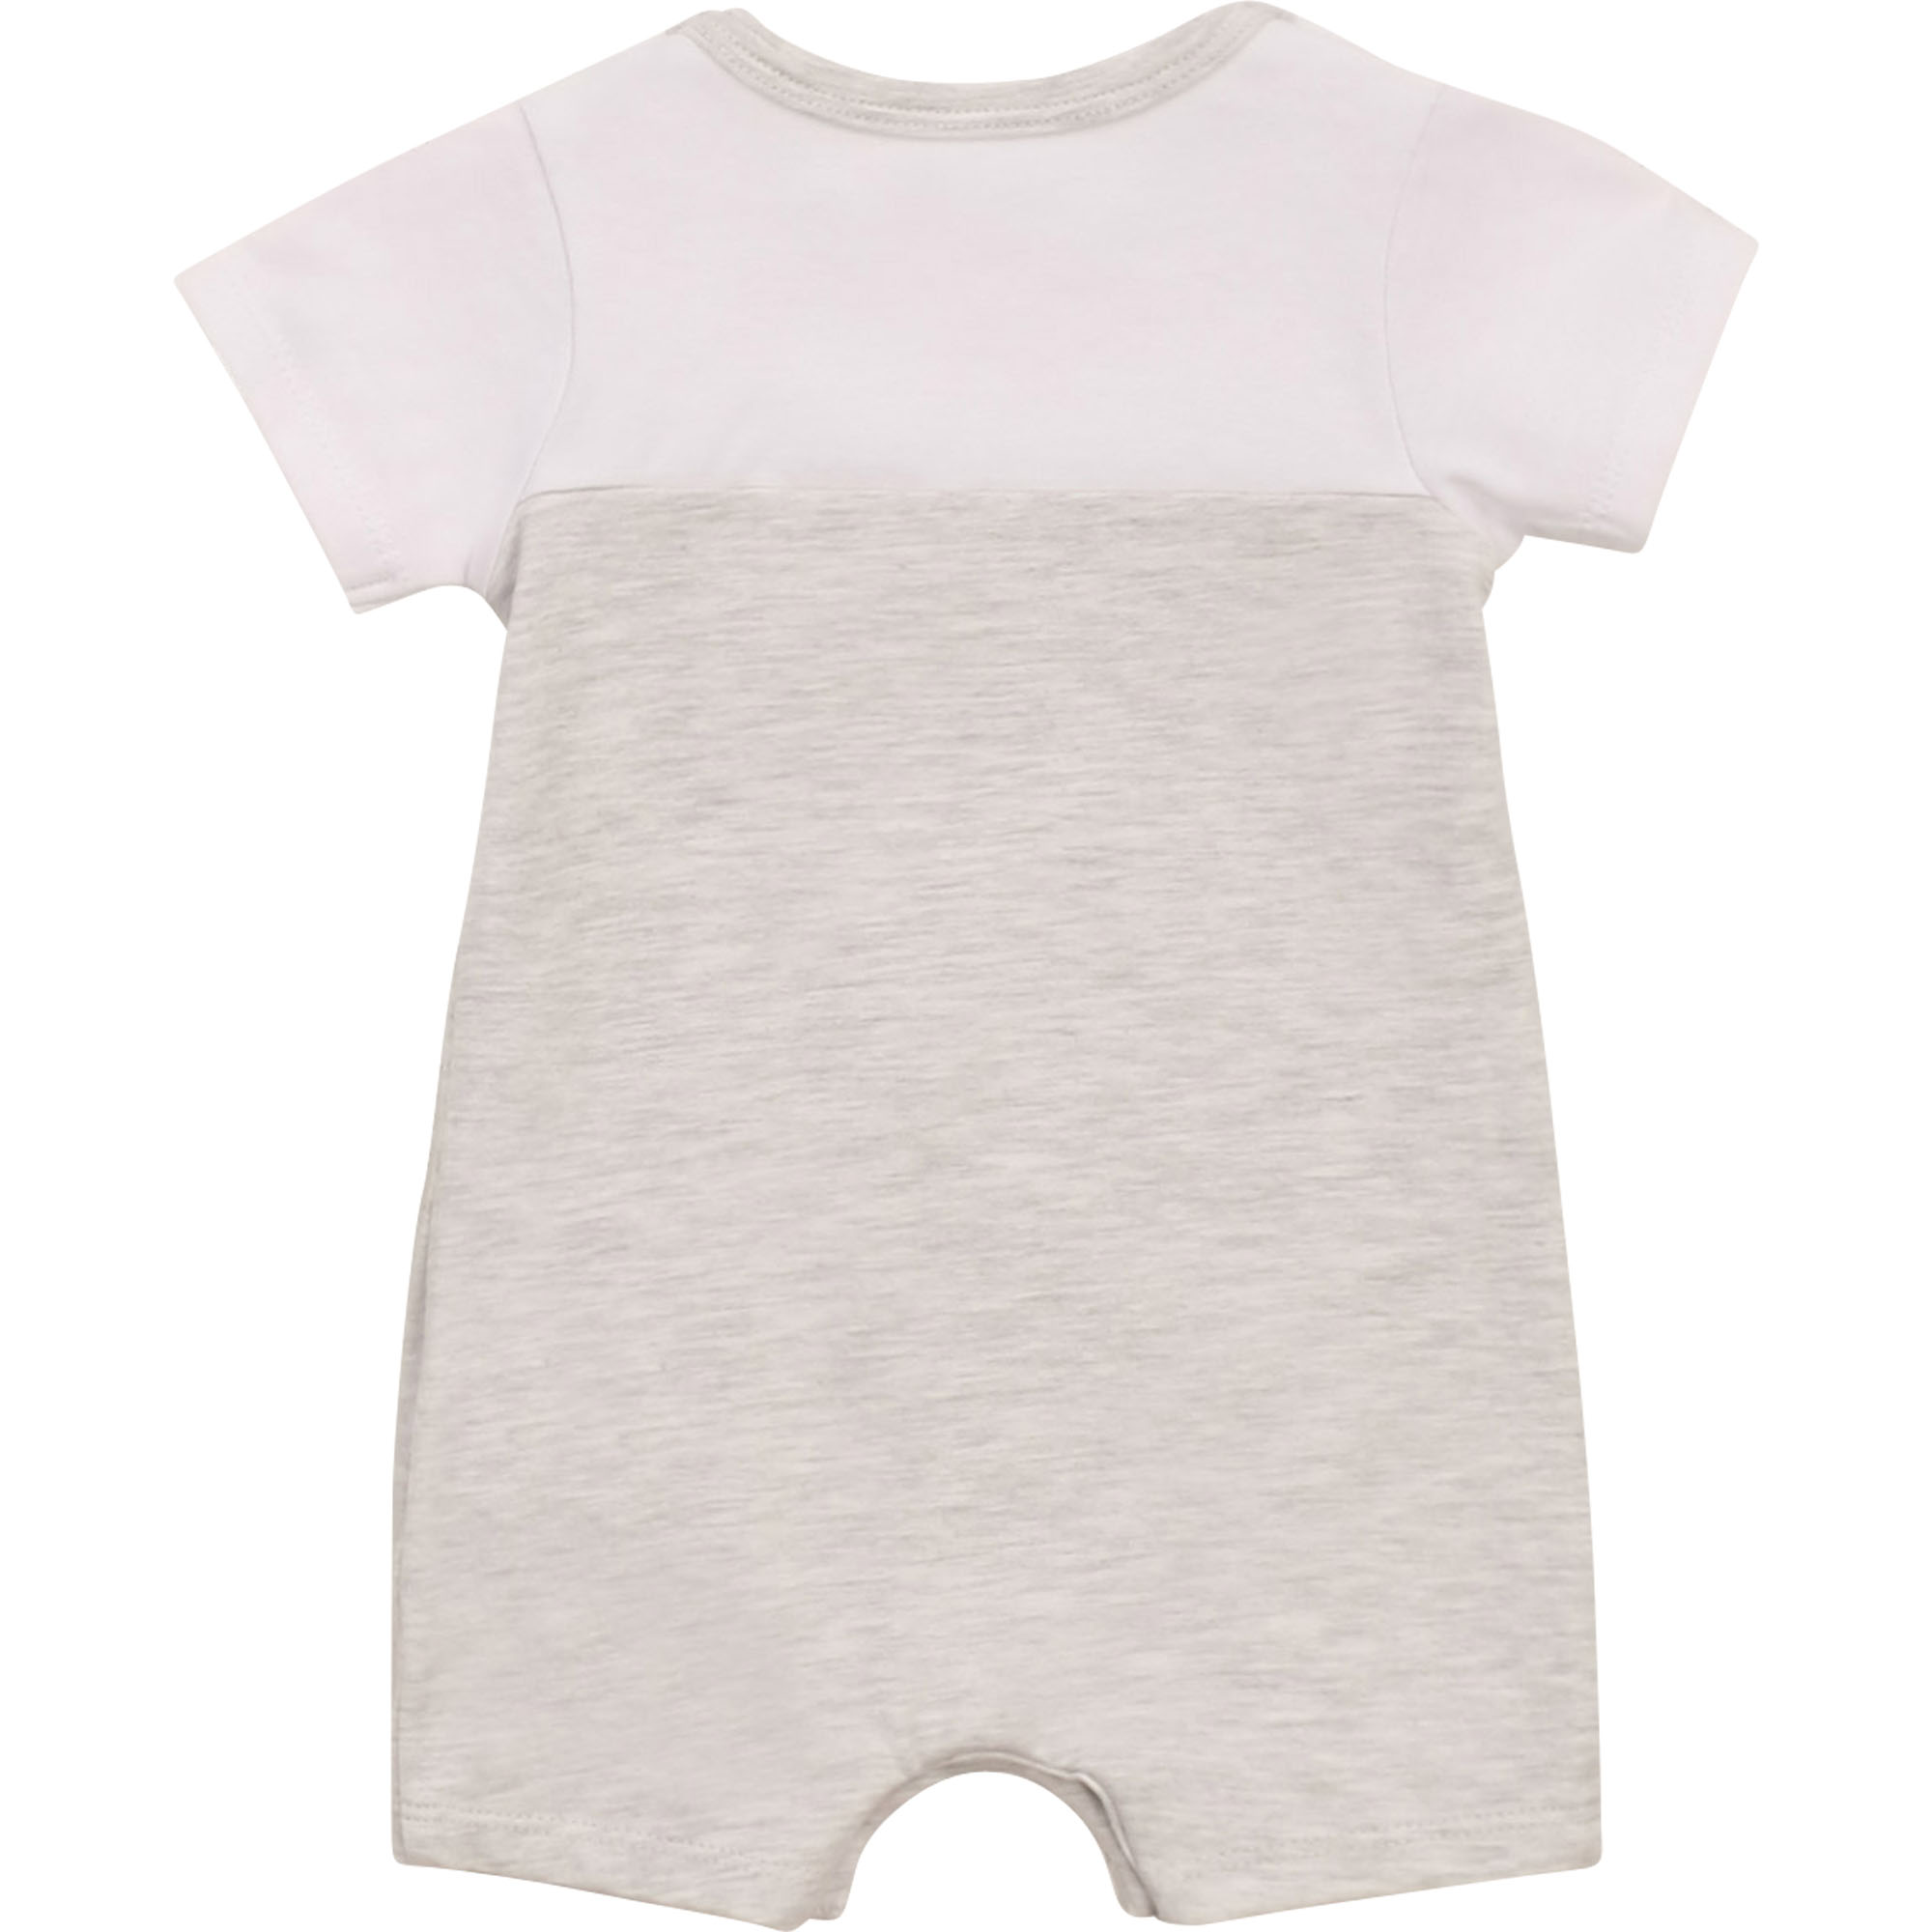 Cotton jersey playsuit KARL LAGERFELD KIDS for BOY